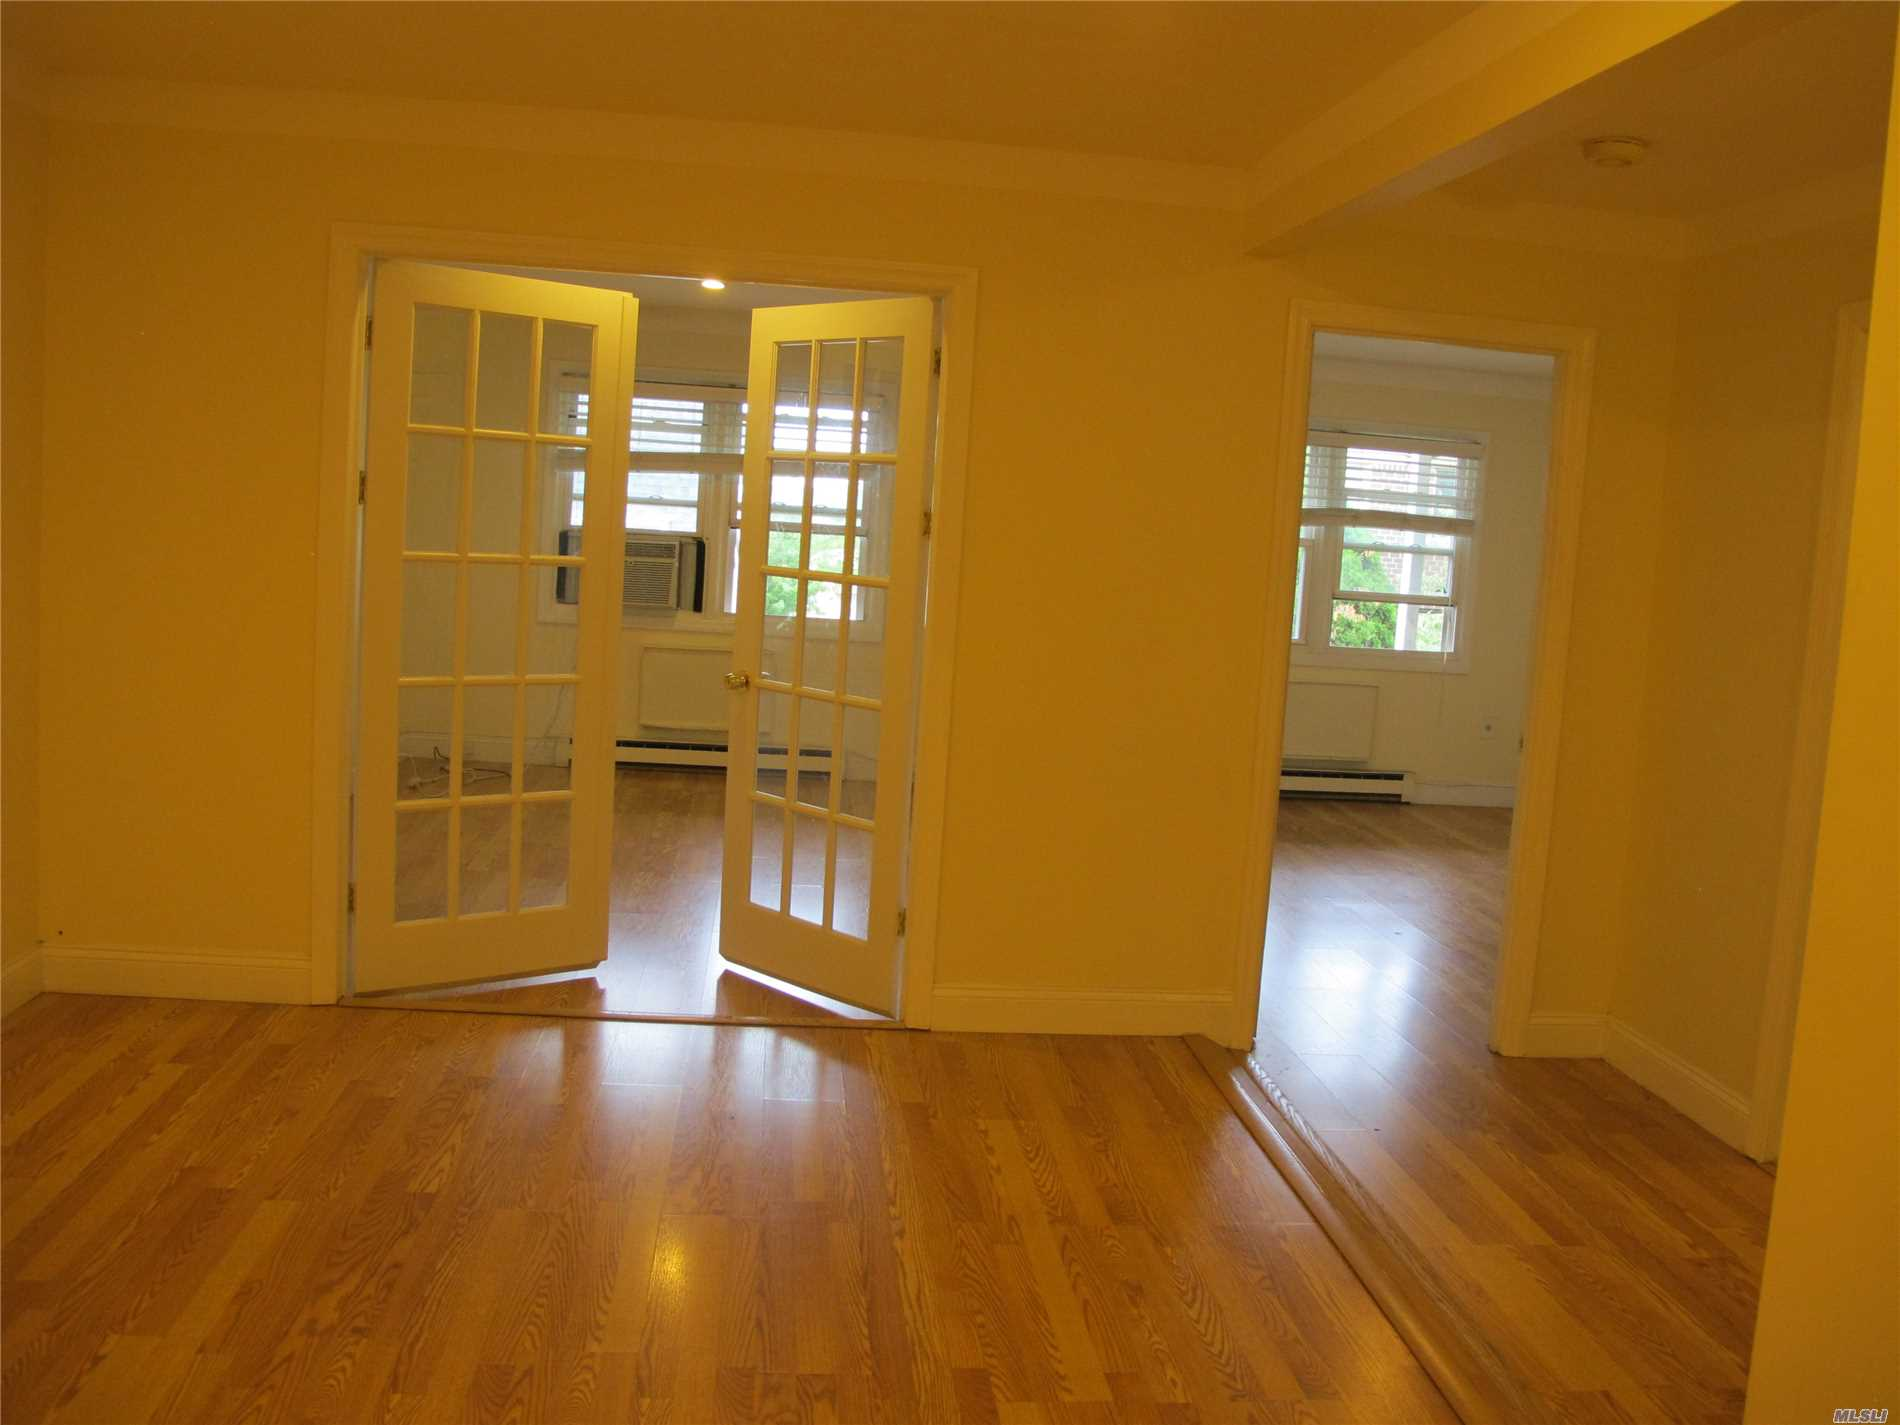 Cozy And Very Clean 1 Br Plus Bonus Den. Move In Condition.Easy Access To Q13 To Lirr. Q28 To Flushing And Qm2, Qm20 To Manhattan. By Bay Terrace Shopping Center And By Fort Tottem Park. All Distance From The Property.